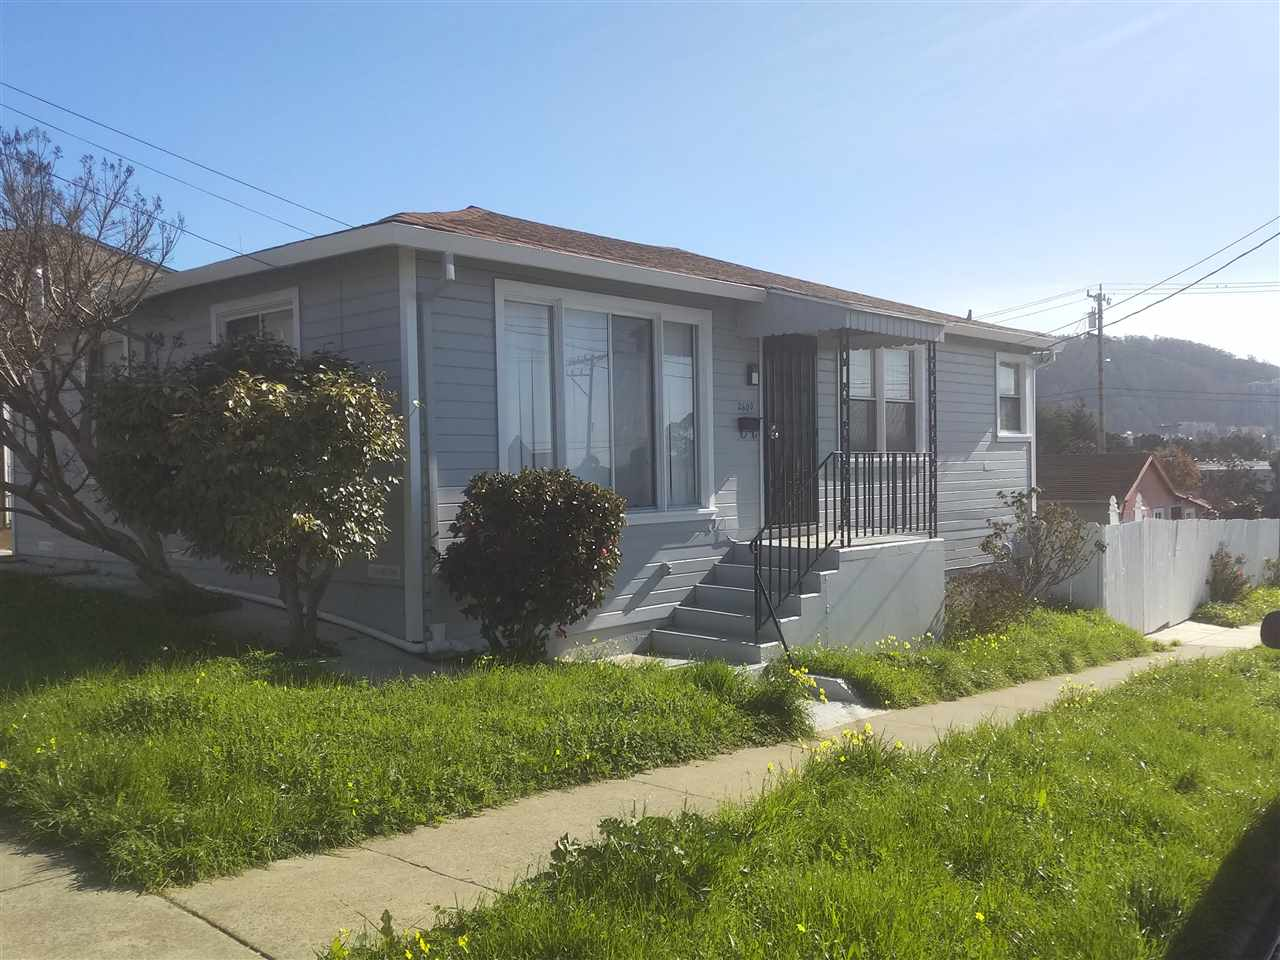 2600 COLUMBIA BLVD, RICHMOND, CA 94804